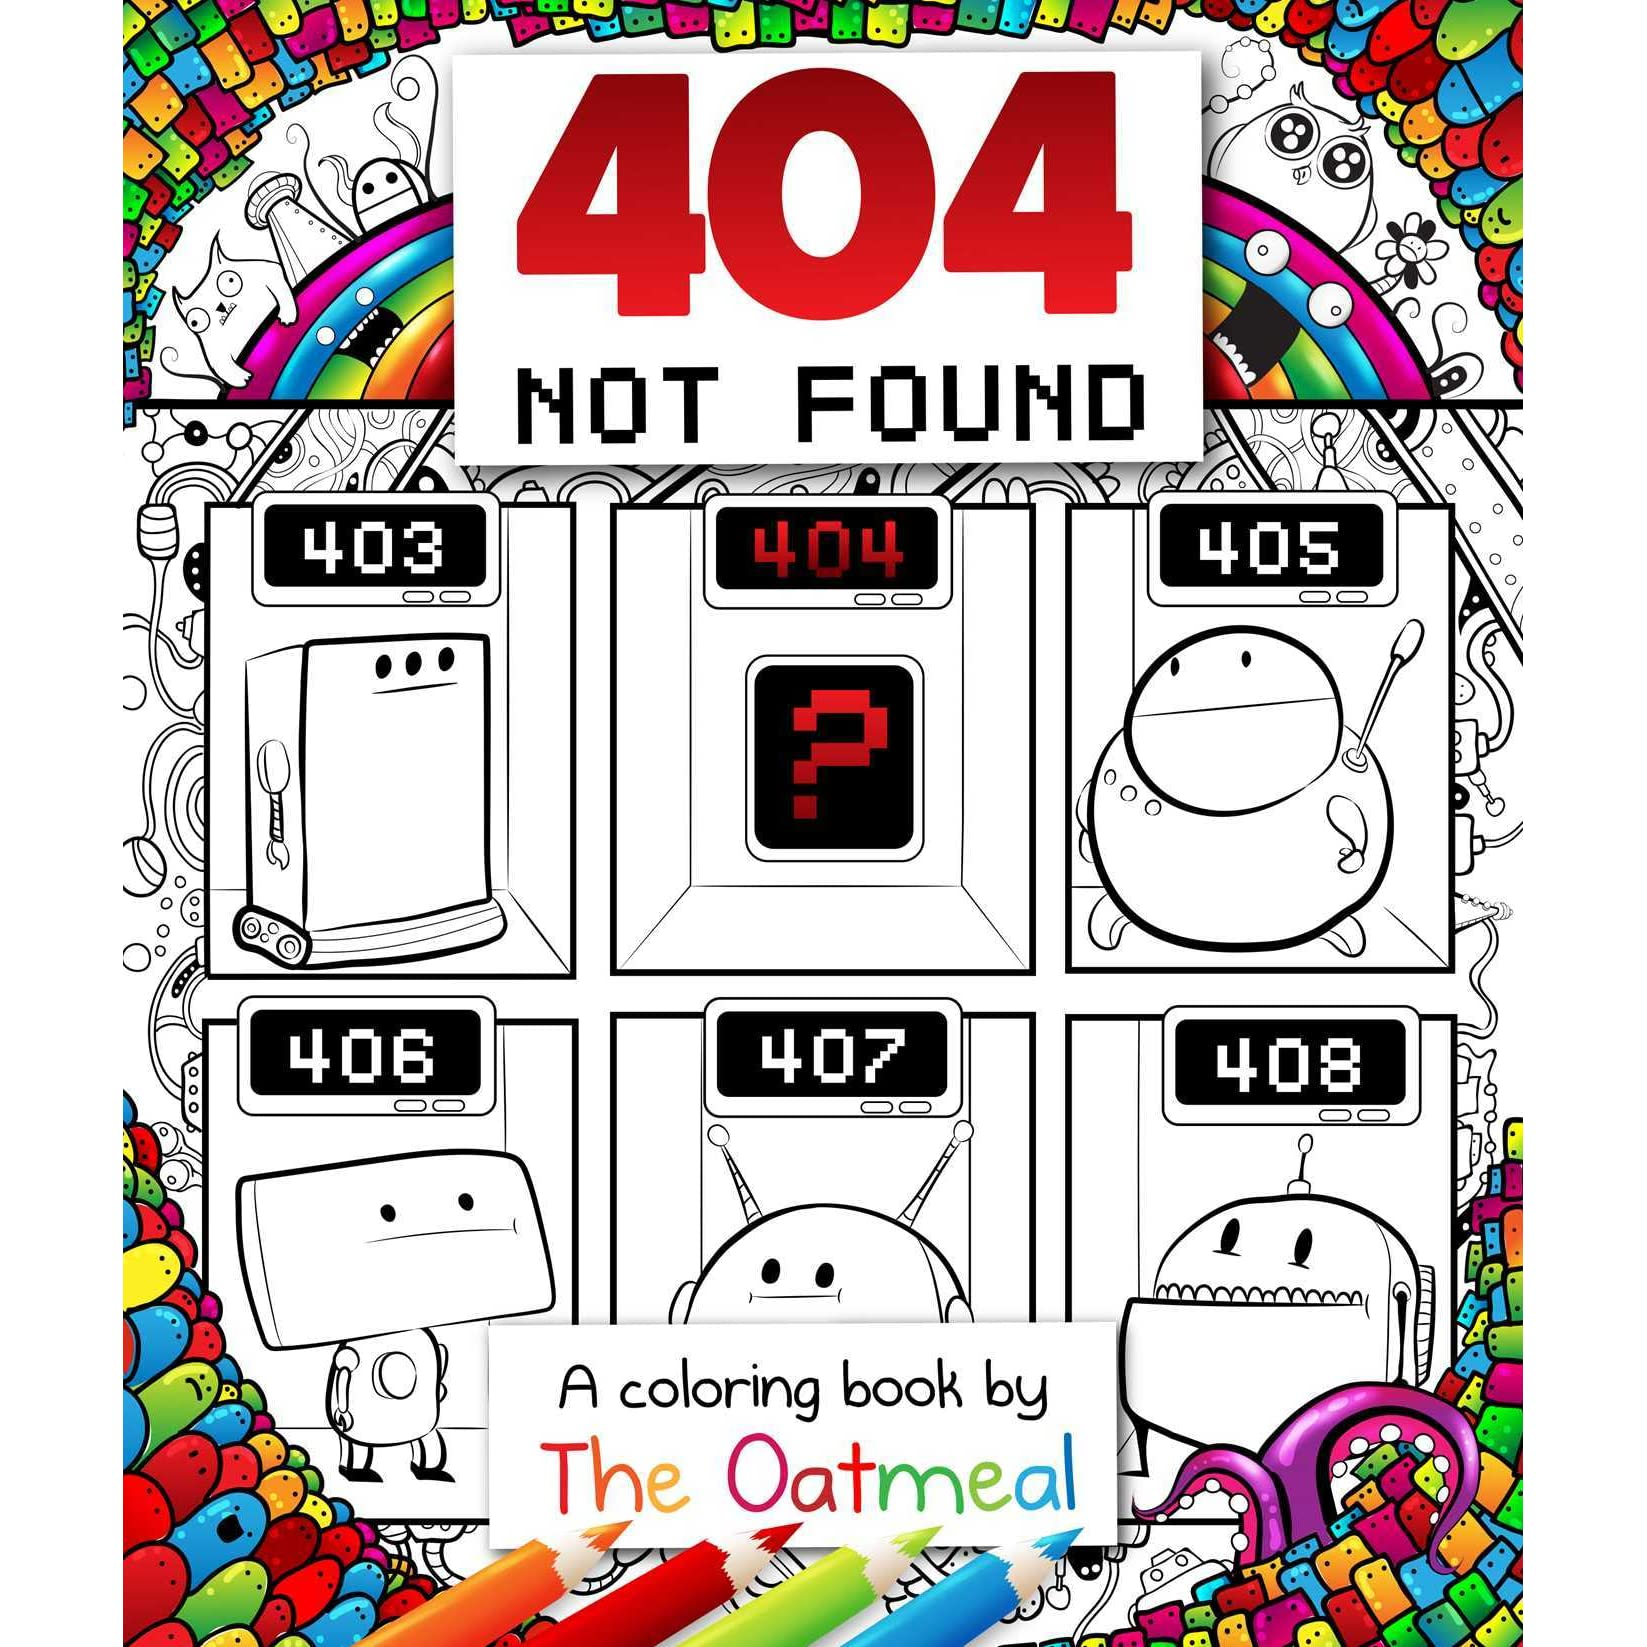 404 Not Found A Coloring Book By The Oatmeal By Matthew Inman